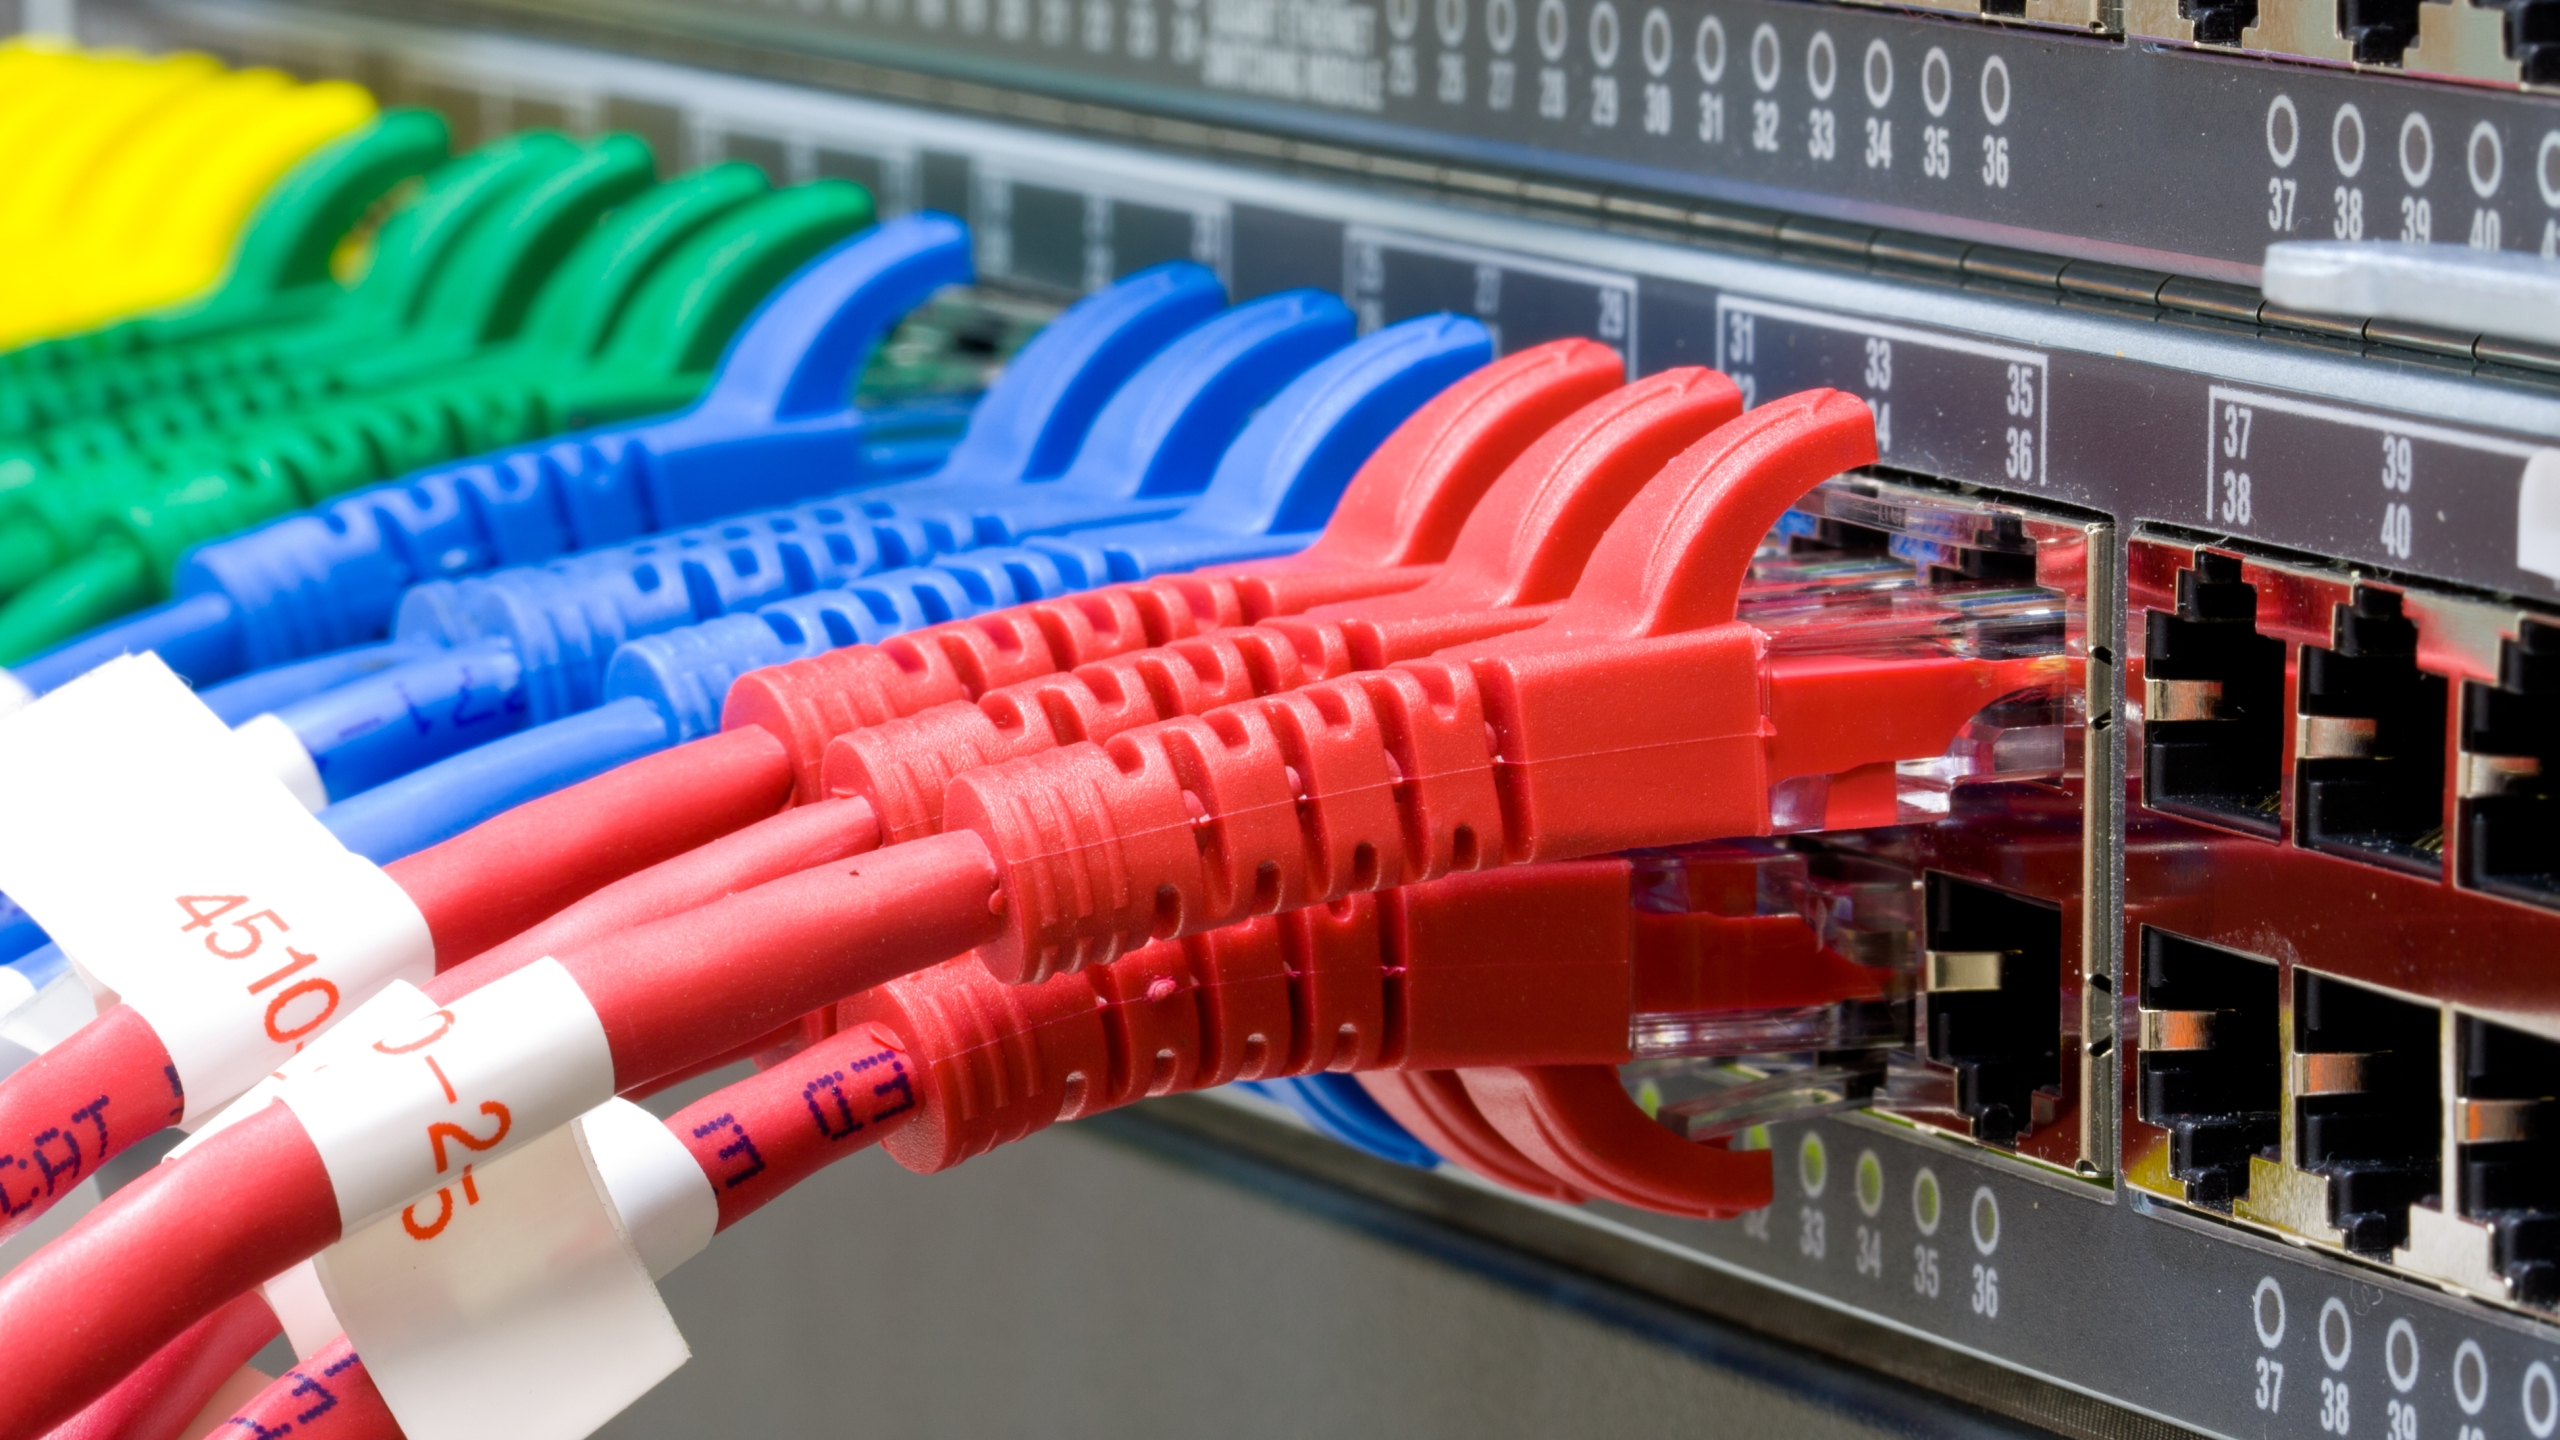 Carbondale IL Professional Voice & Data Networking, Low Voltage Cabling Contractor